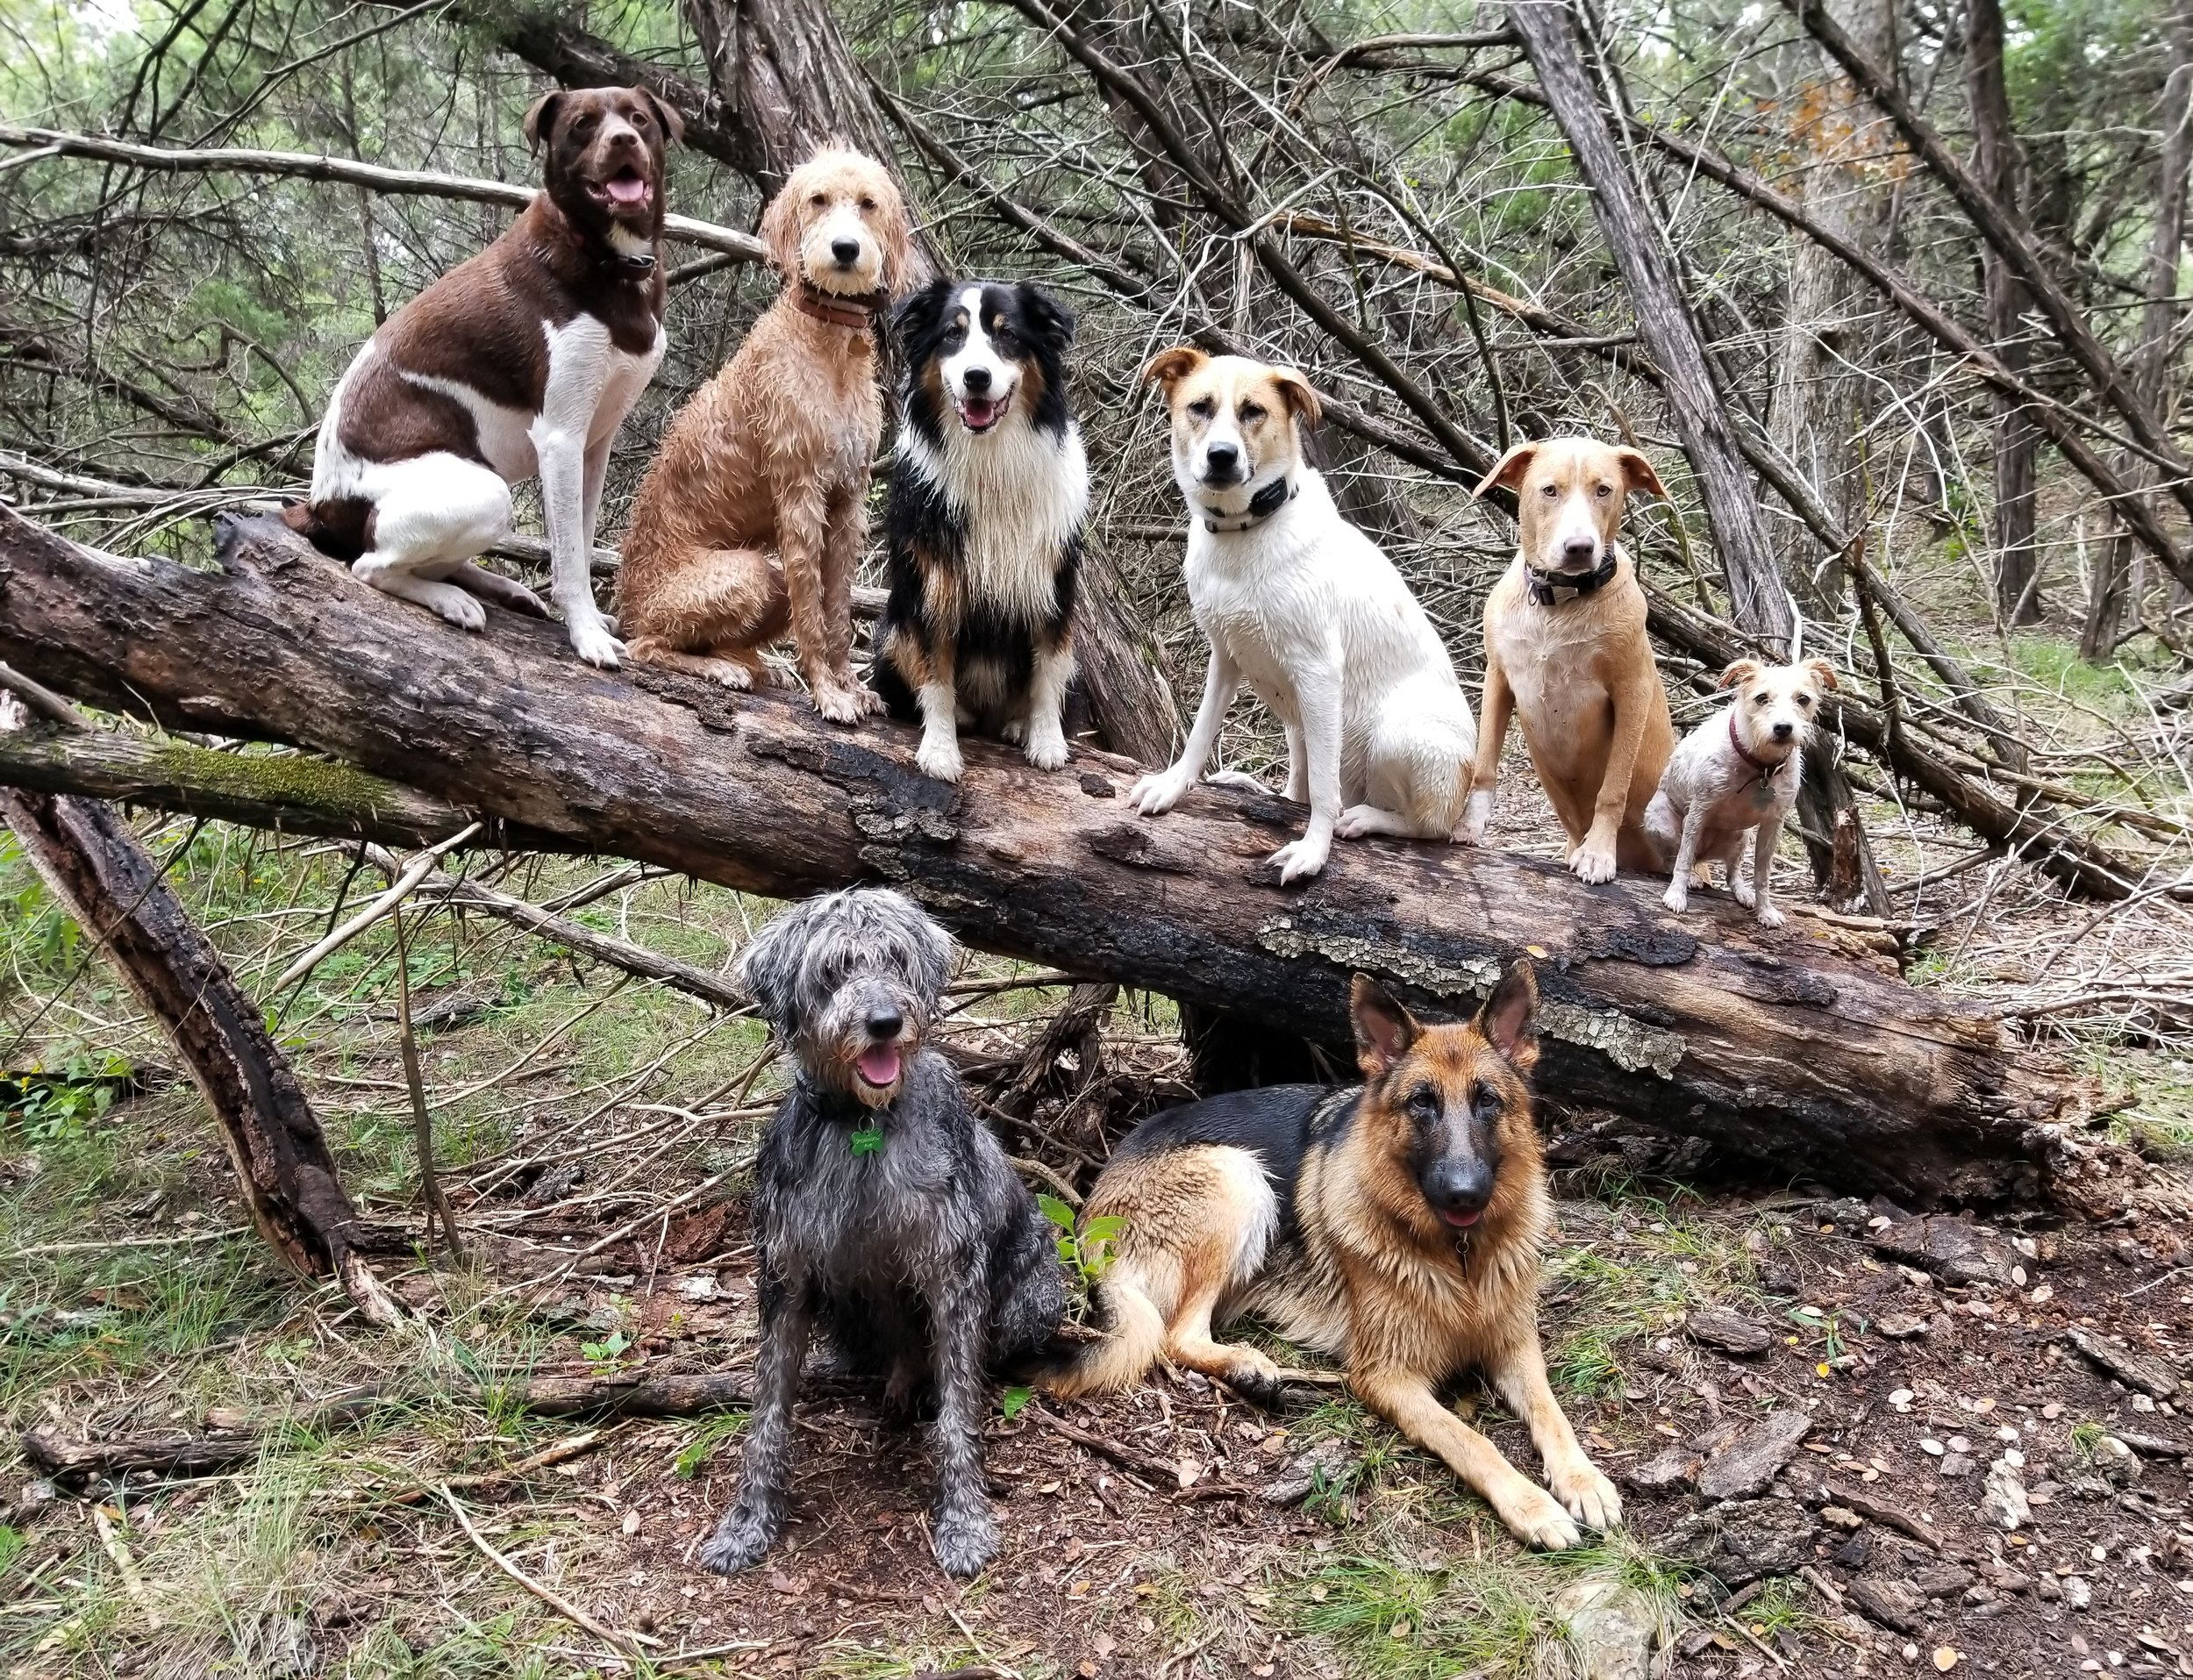 When we ask the dogs to pose for pictures, we use many commands including come, sit, up, wait, down, this way, stay, off and leave it. This photos not only look great, but are a great excuse to practice obedience, patience and focus.